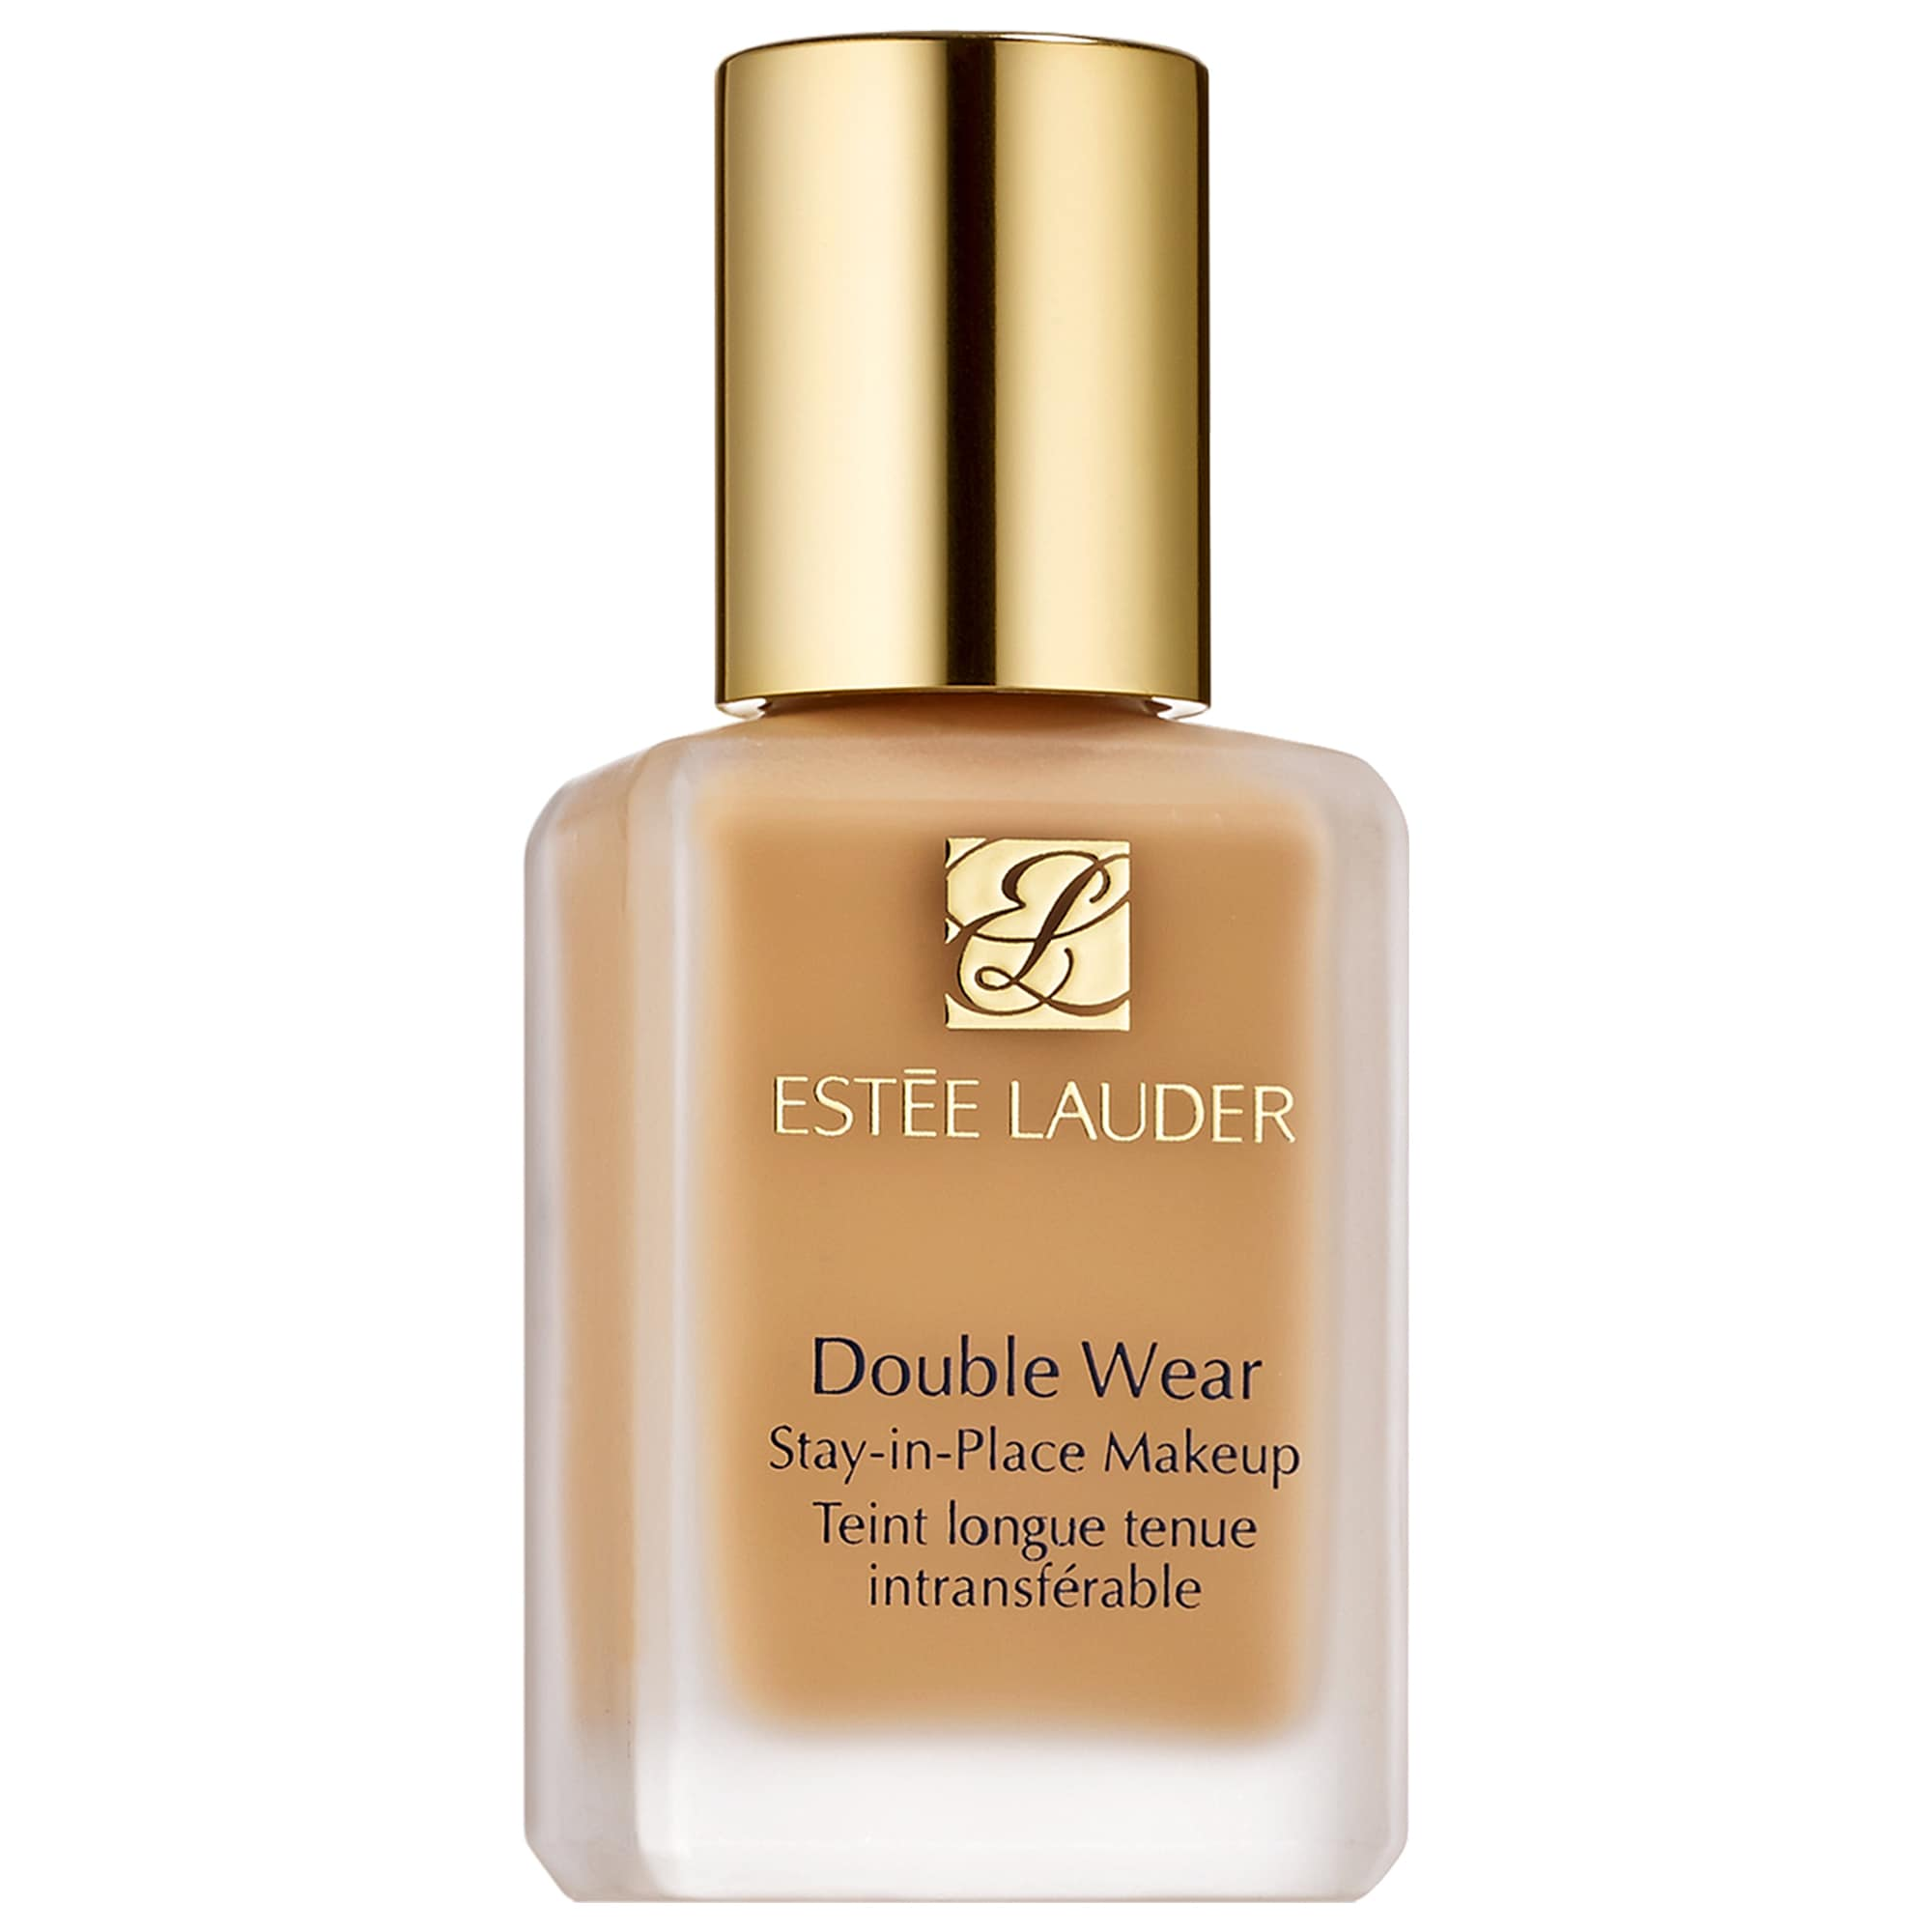 Double Wear Stay-in-Place Makeup SPF 10 - 2C1 Pure Beige